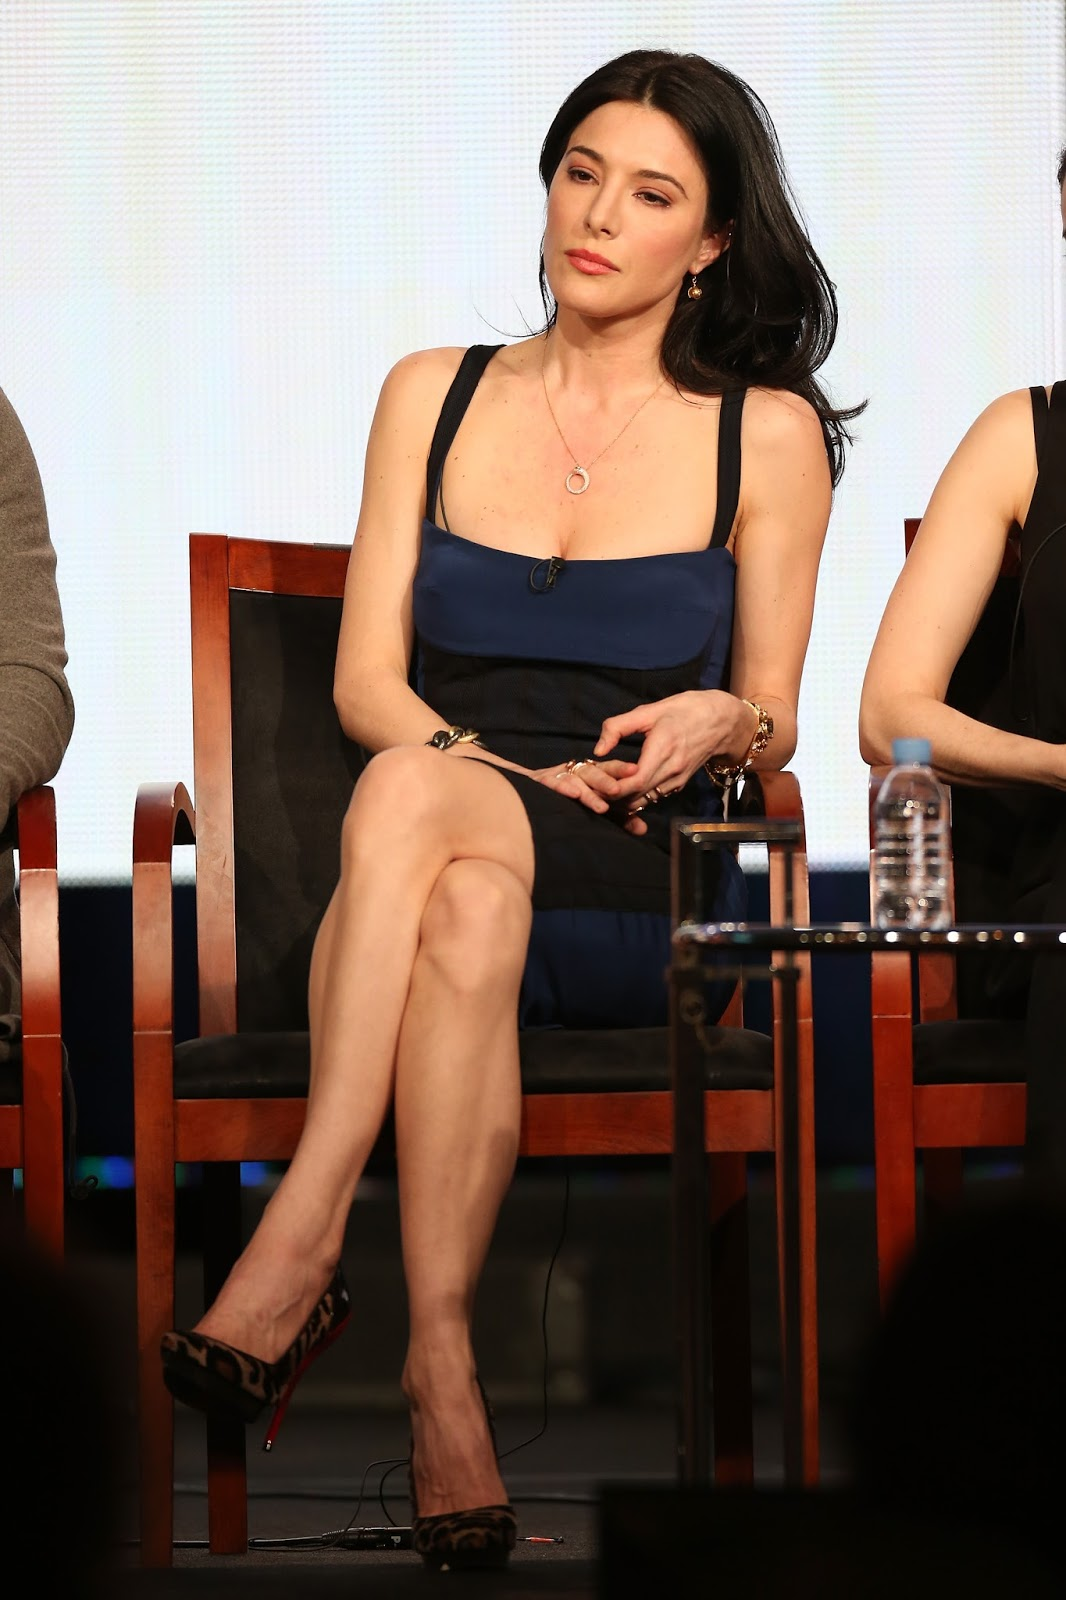 Pity, that jaime murray pictures